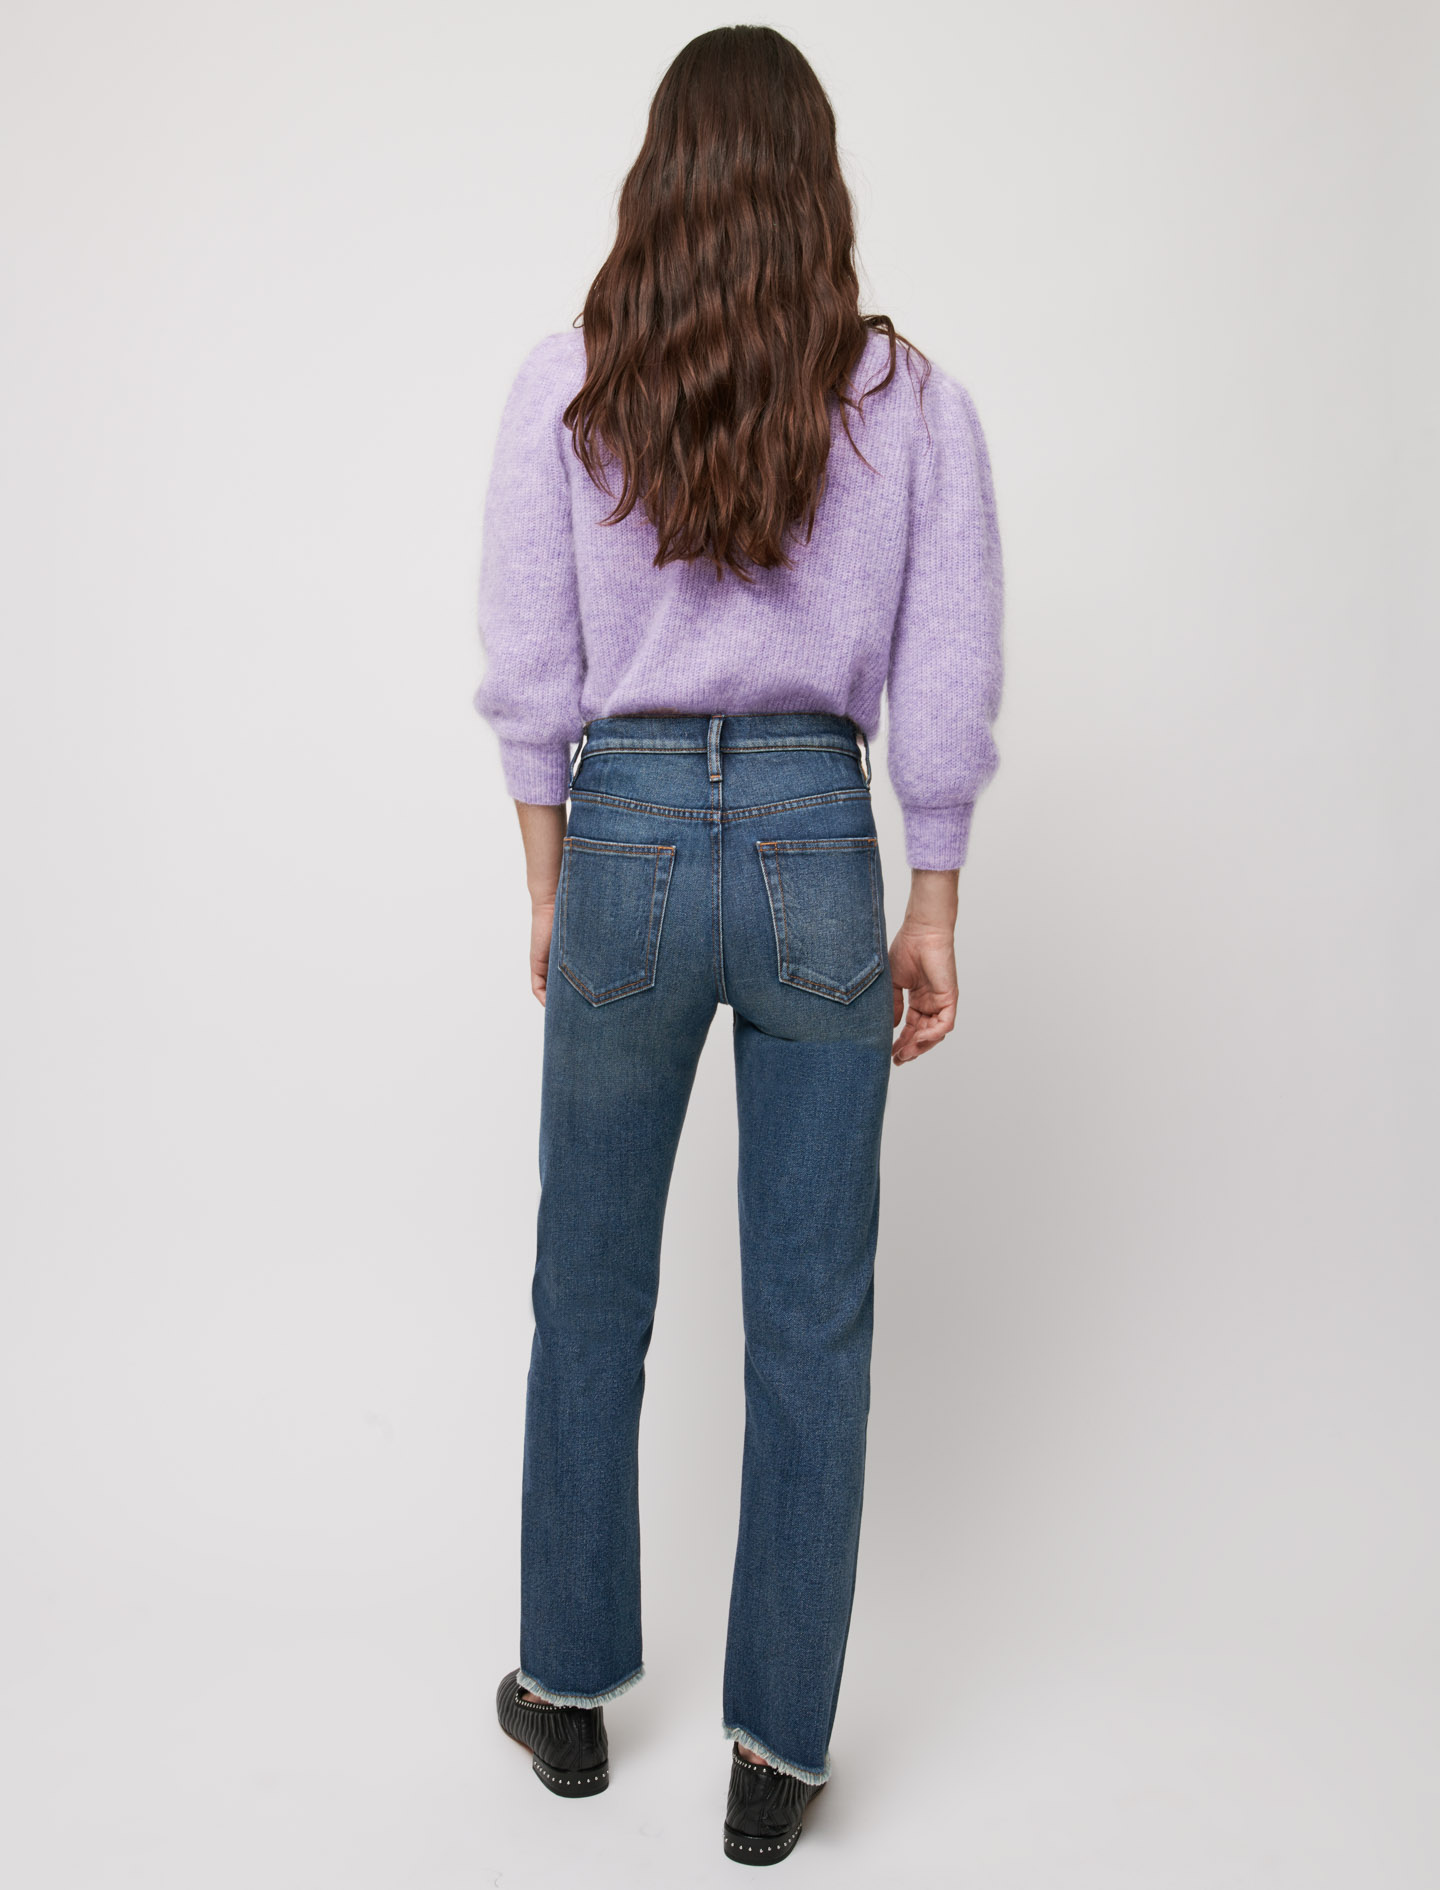 Slim fit jeans, frayed at the bottom - Blue